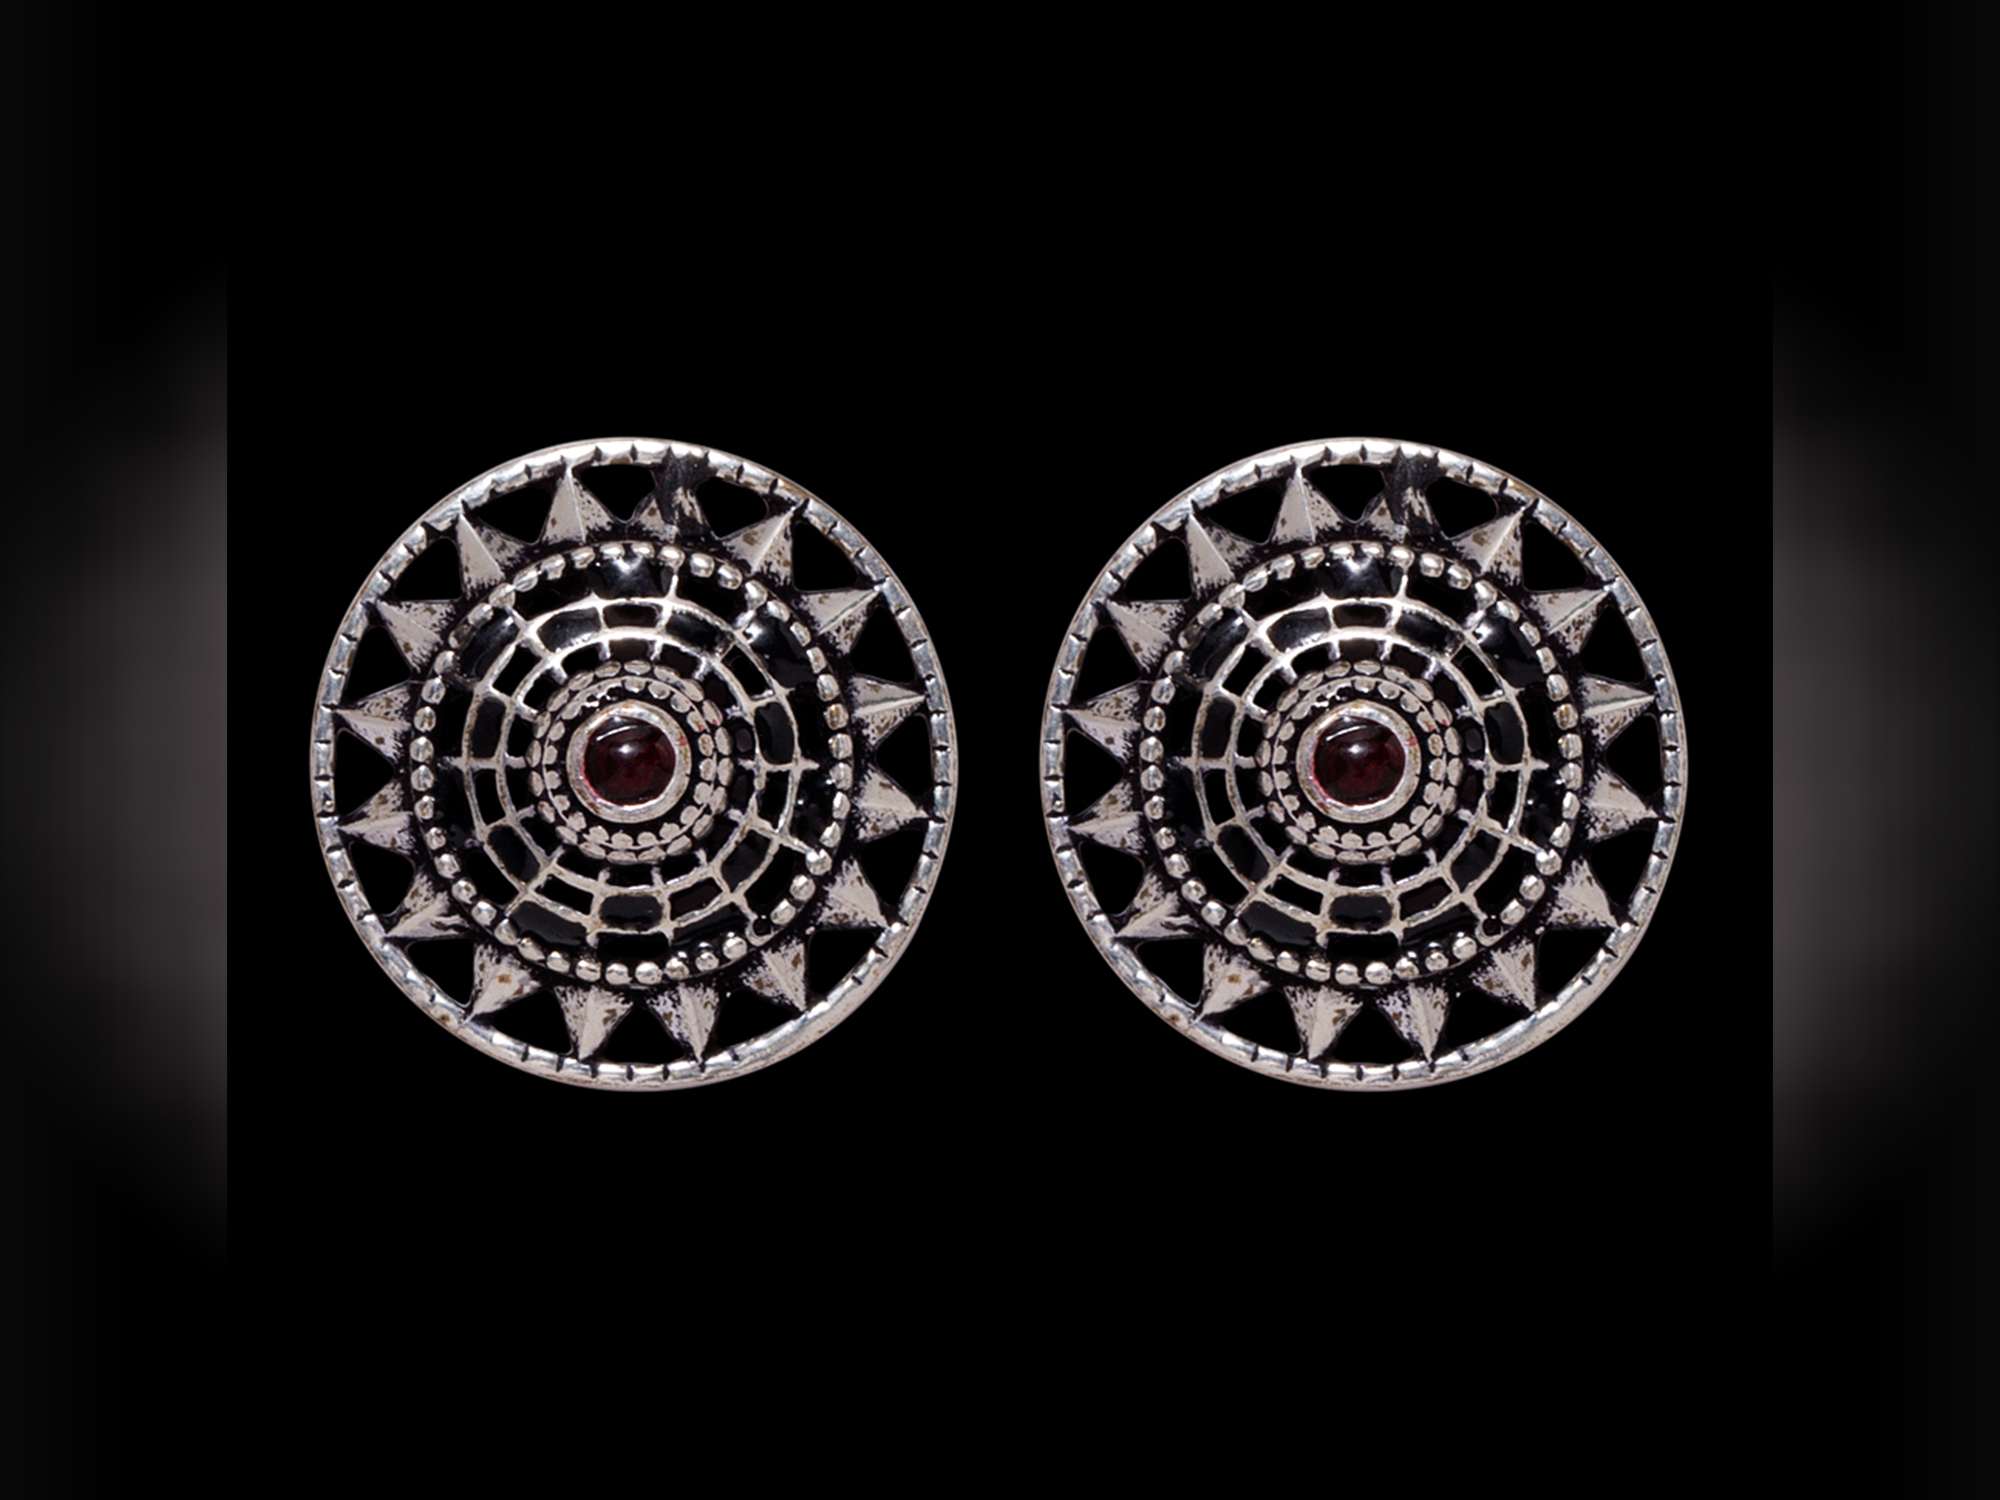 Brass and Silver Statement Earrings With Tribal Patterns